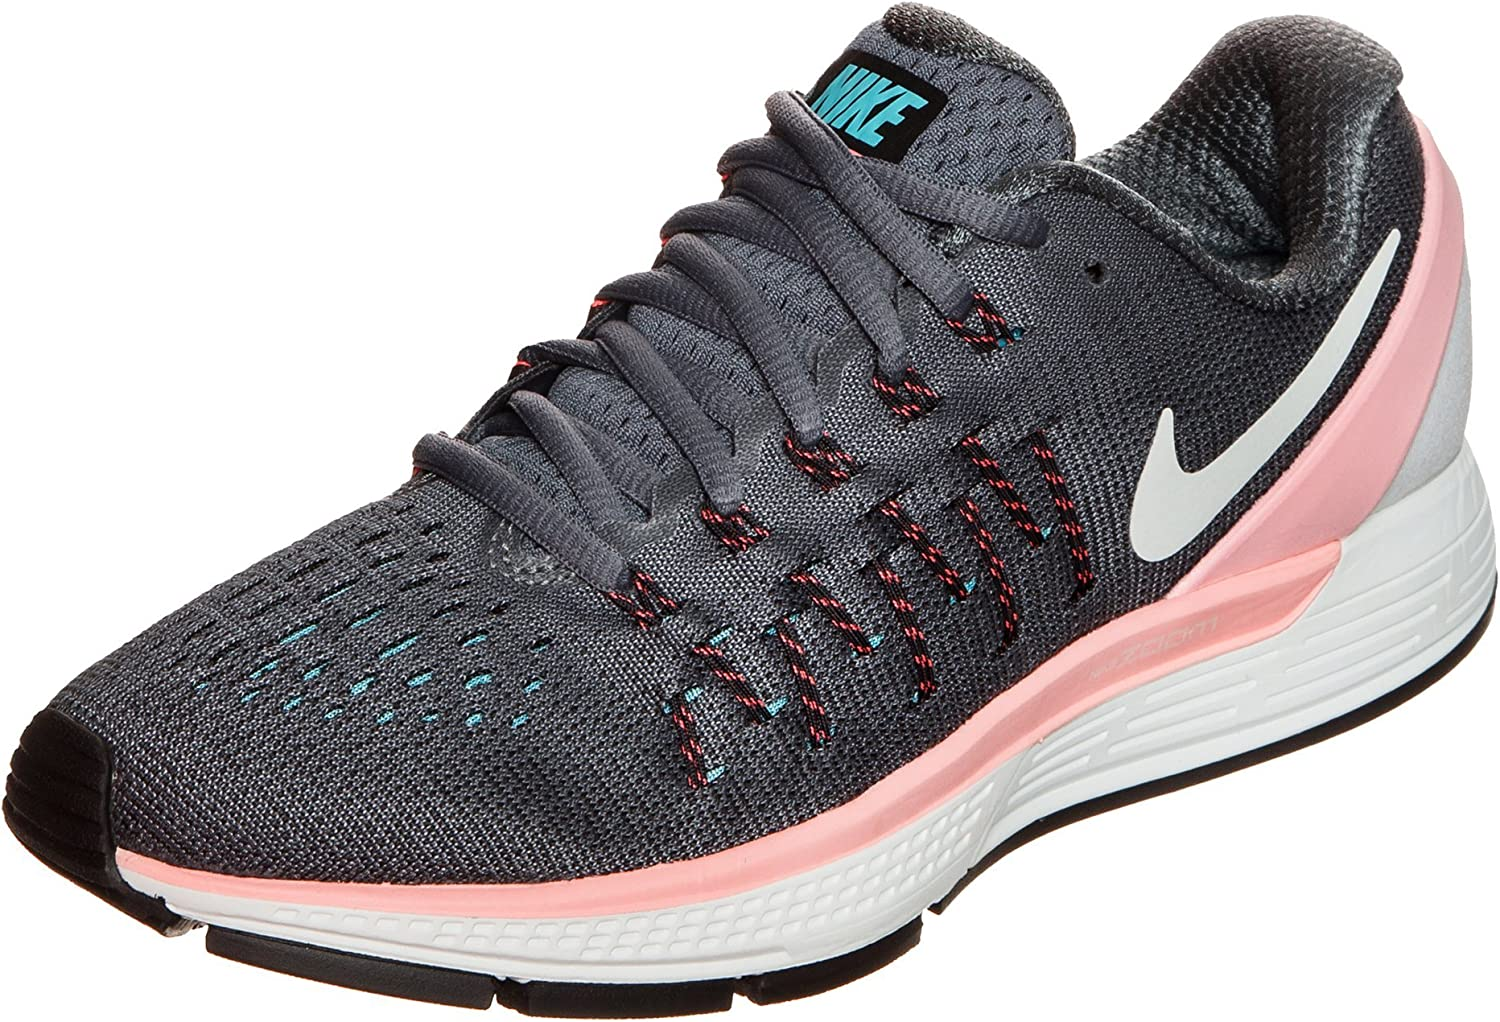 WMNS Air Zoom Odyssey 2 Running Shoes